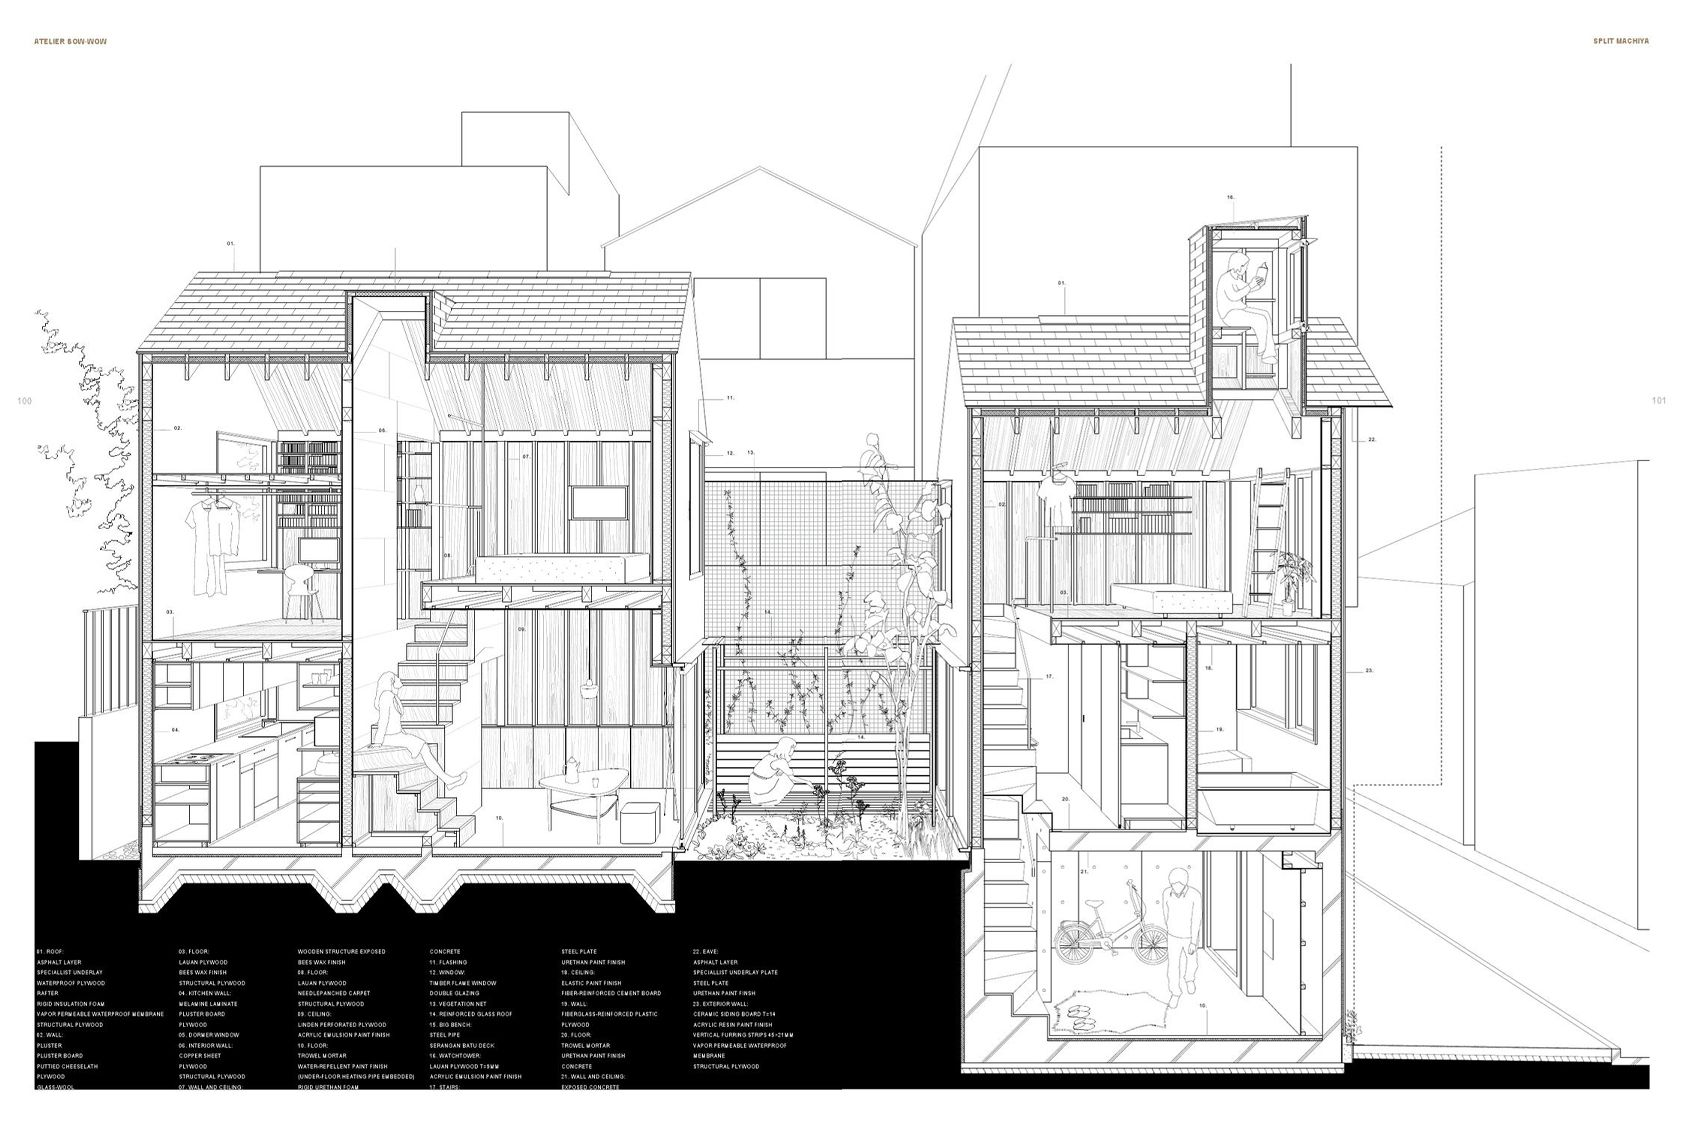 1000 images about architecture drawings on pinterest bow wow atelier and architects atelier bow wow office nap